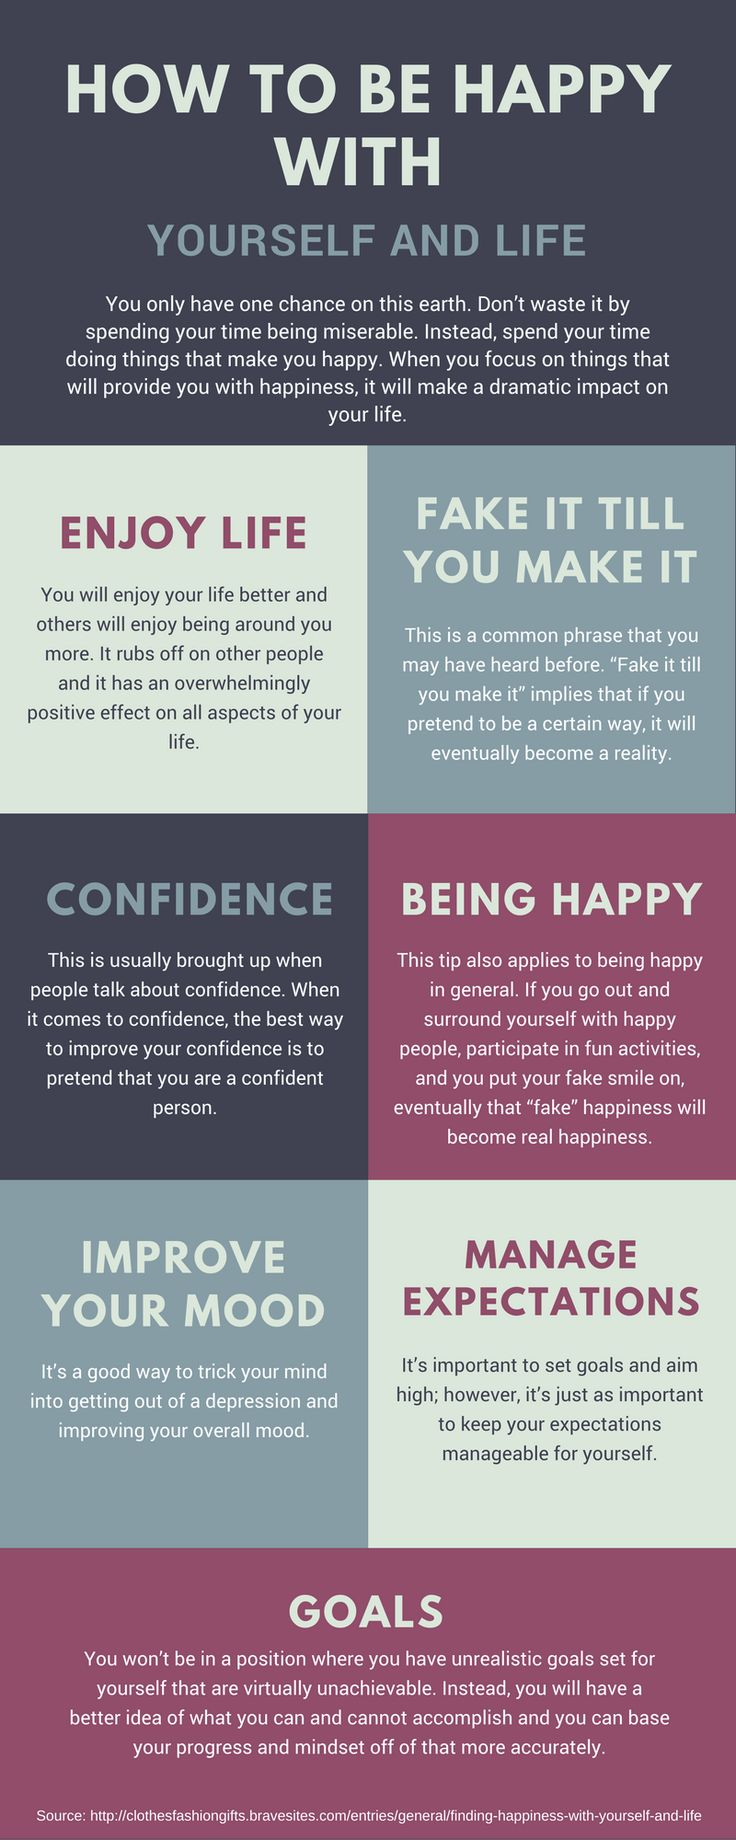 How to Be Happy With Yourself And Life - You only have one chance on this earth. Don't waste it by spending your time being miserable. Instead, spend your time doing things that make you happy. Below, we have a few tips that you can follow to find happiness with yourself and your life.    1. Fake It Till You Make It  2. Manage Expectations For Yourself